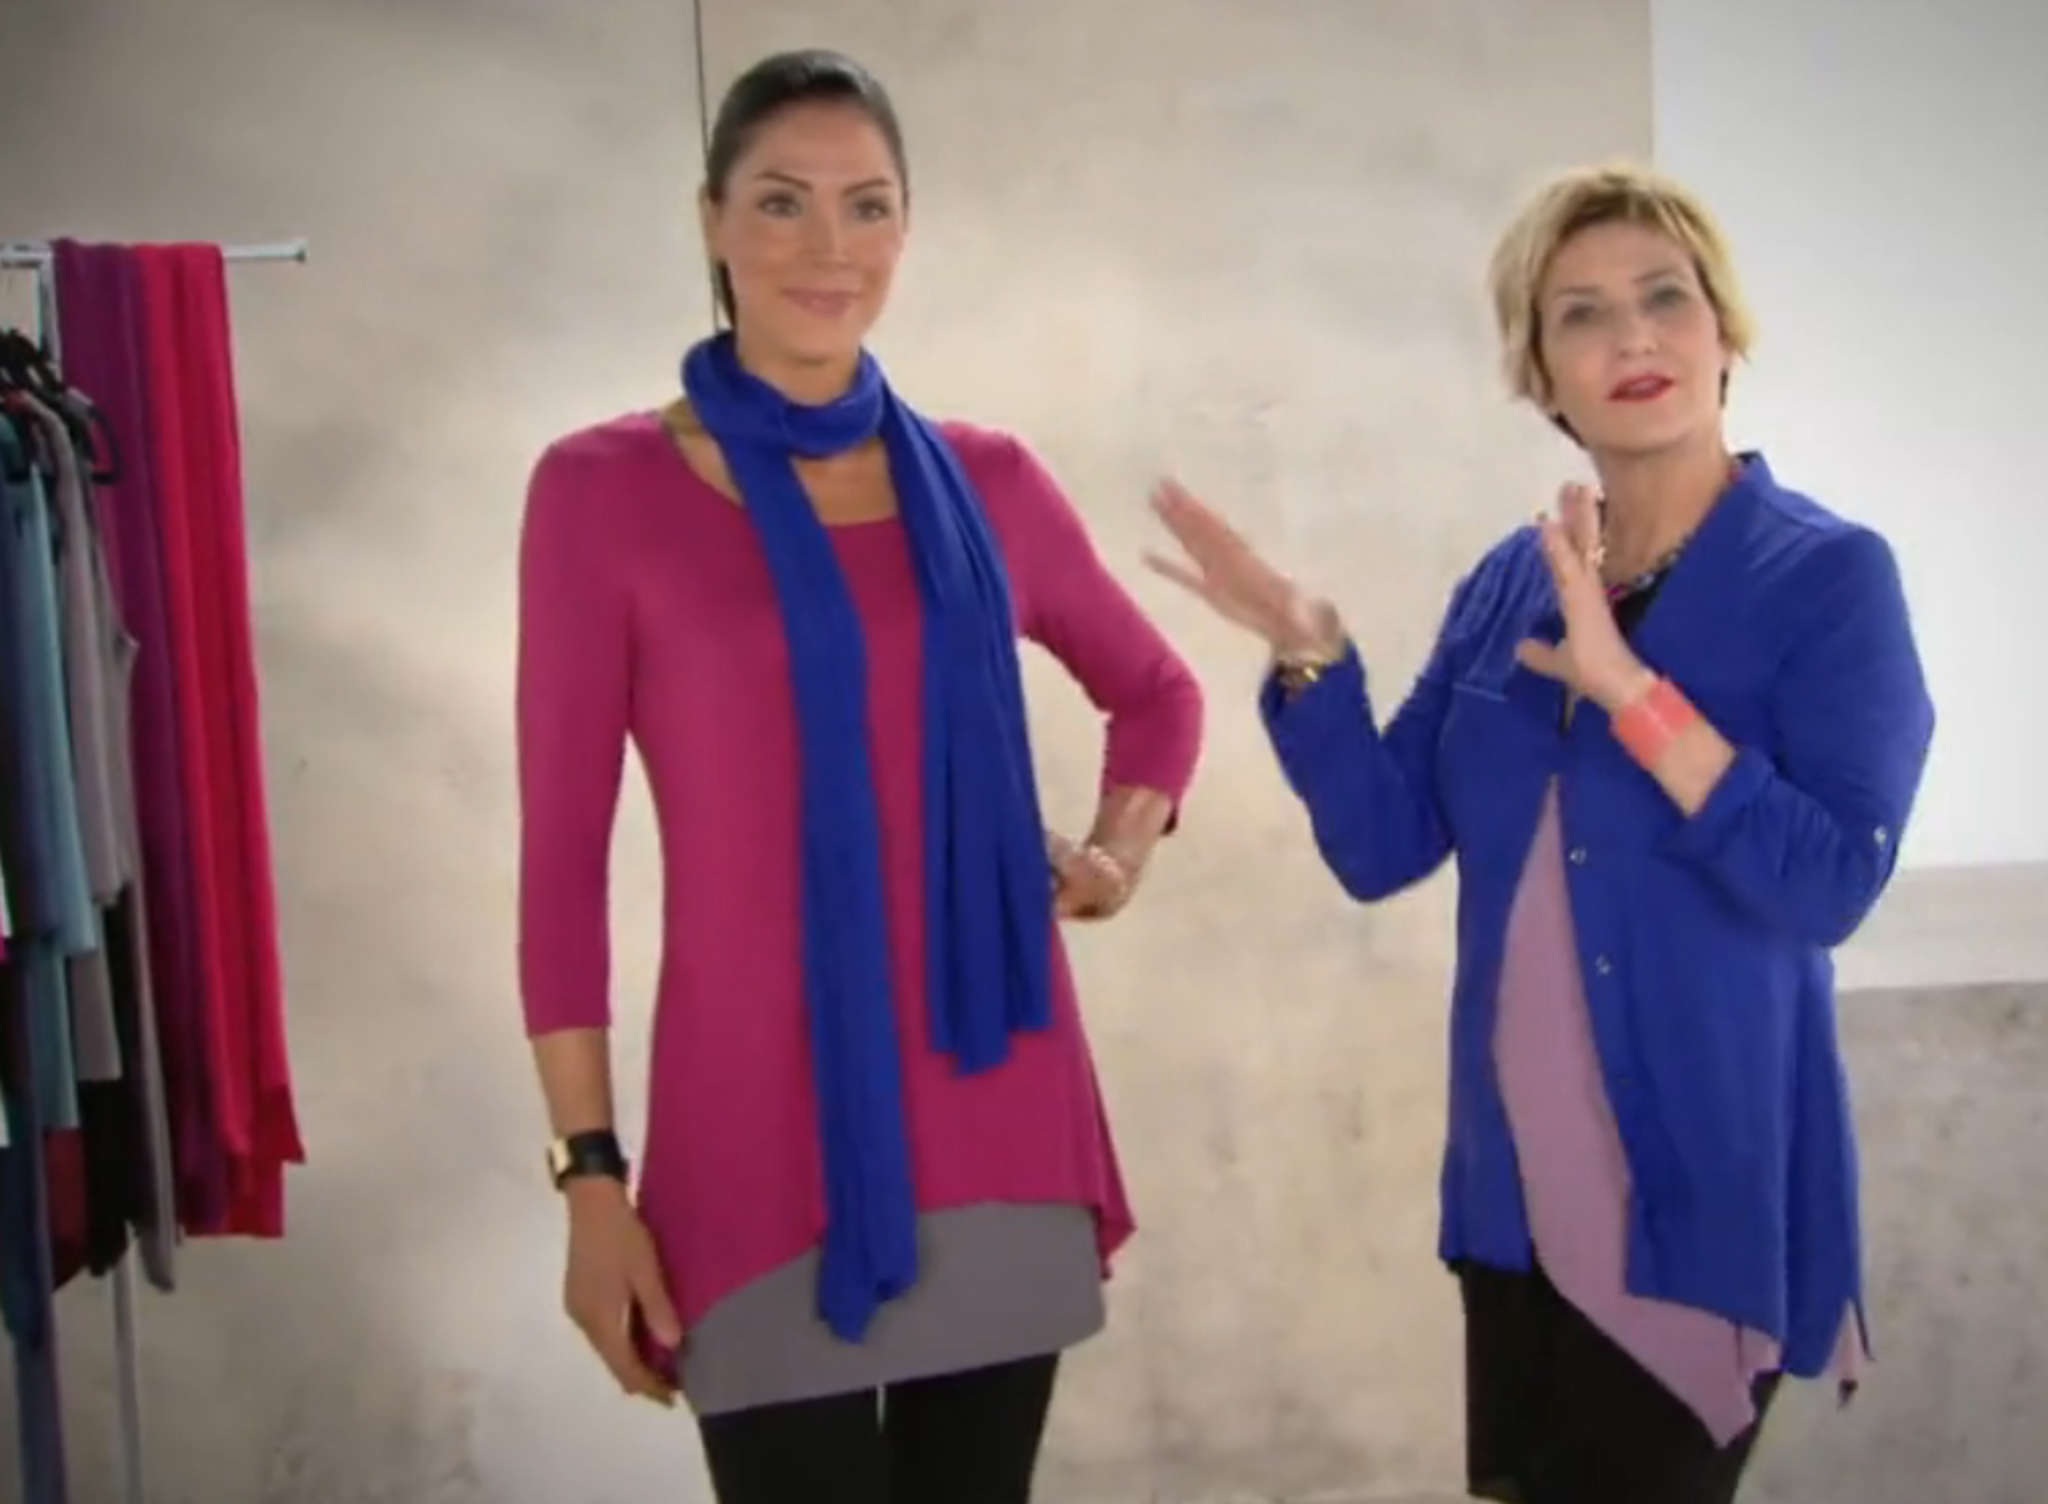 Lori Goldstein (right) discusses layering in a QVC video for her LOGO by Lori Goldstein collection. The stylist will give tips at the conference Thursday.